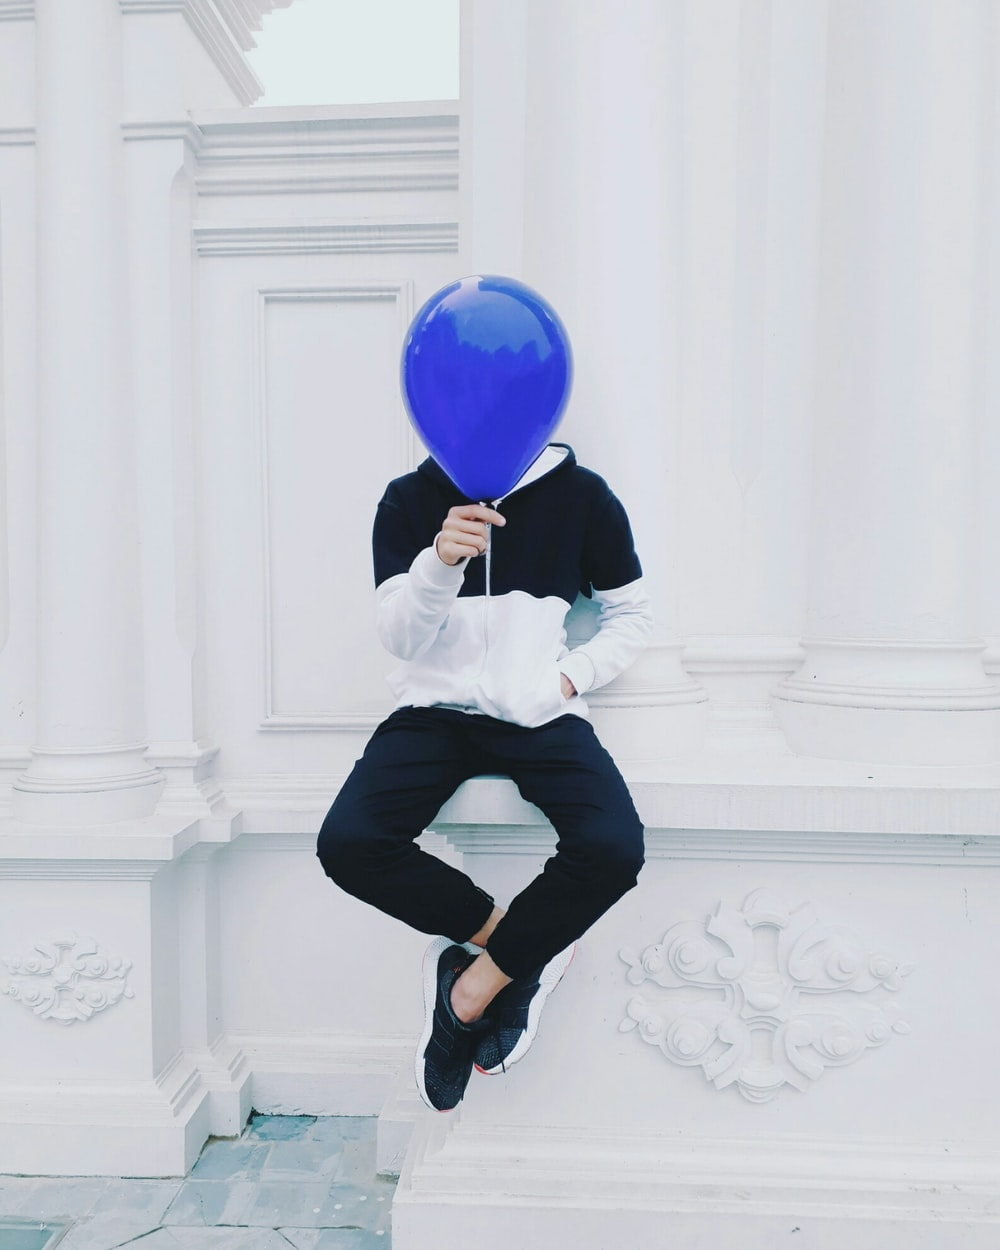 person sitting on white concrete pavement holding blue balloon at daytime